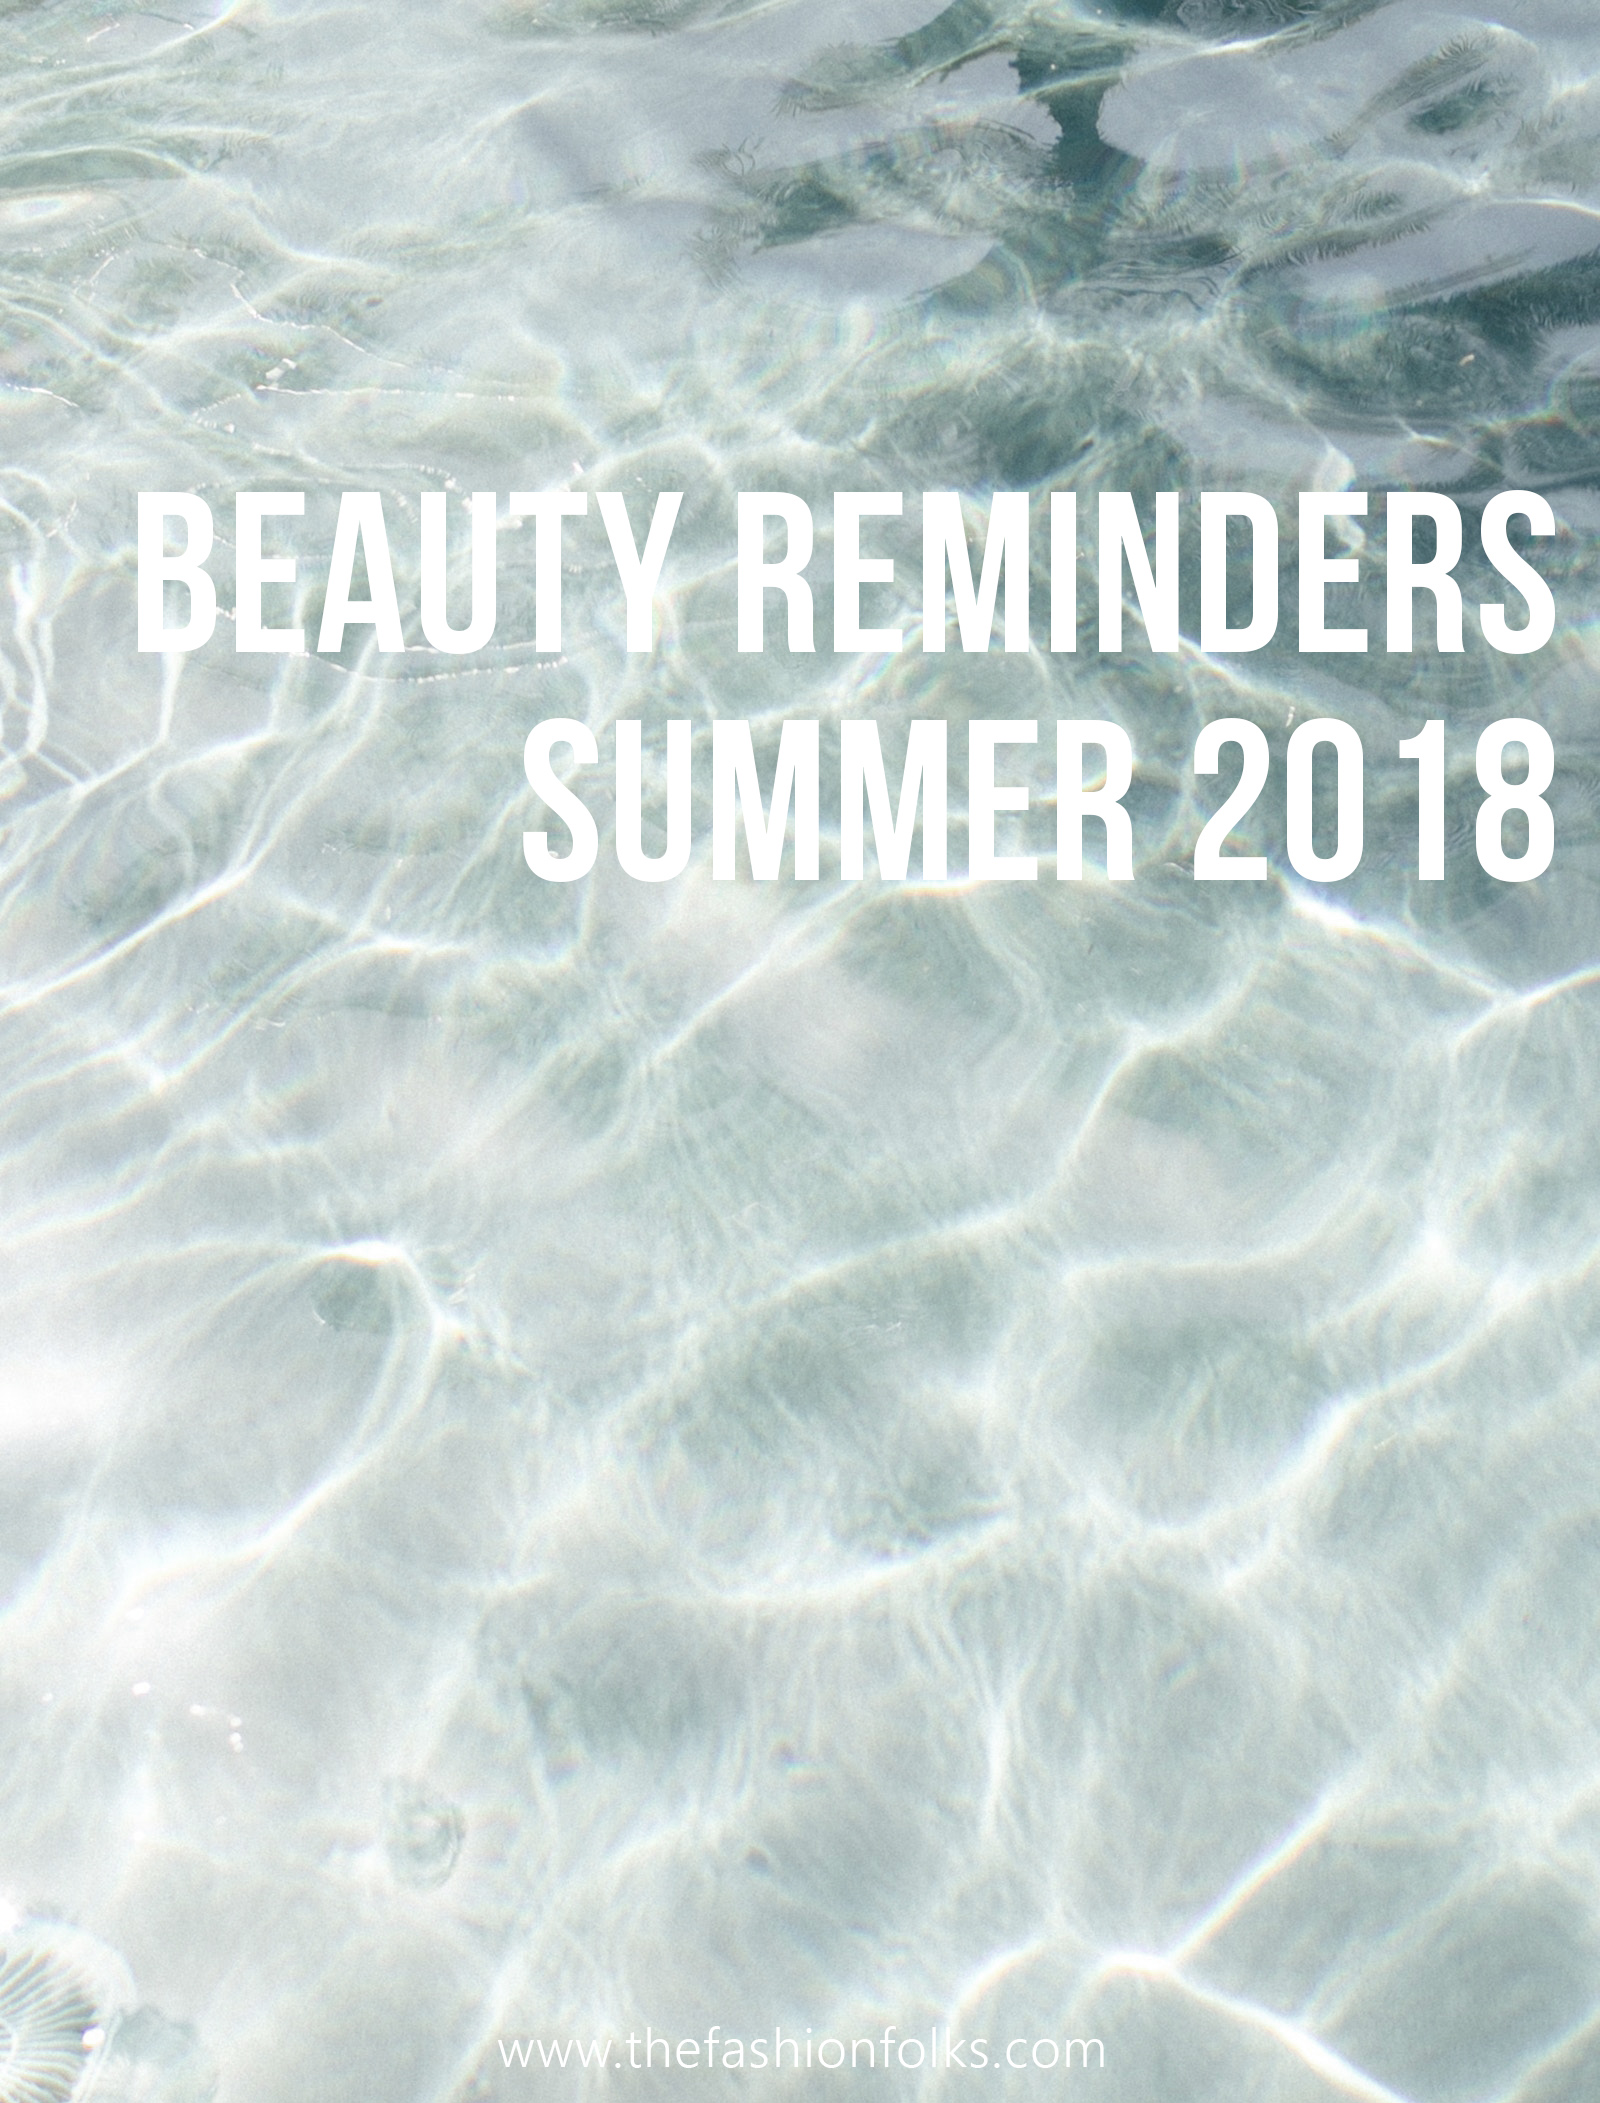 Beauty Reminders Summer 2018